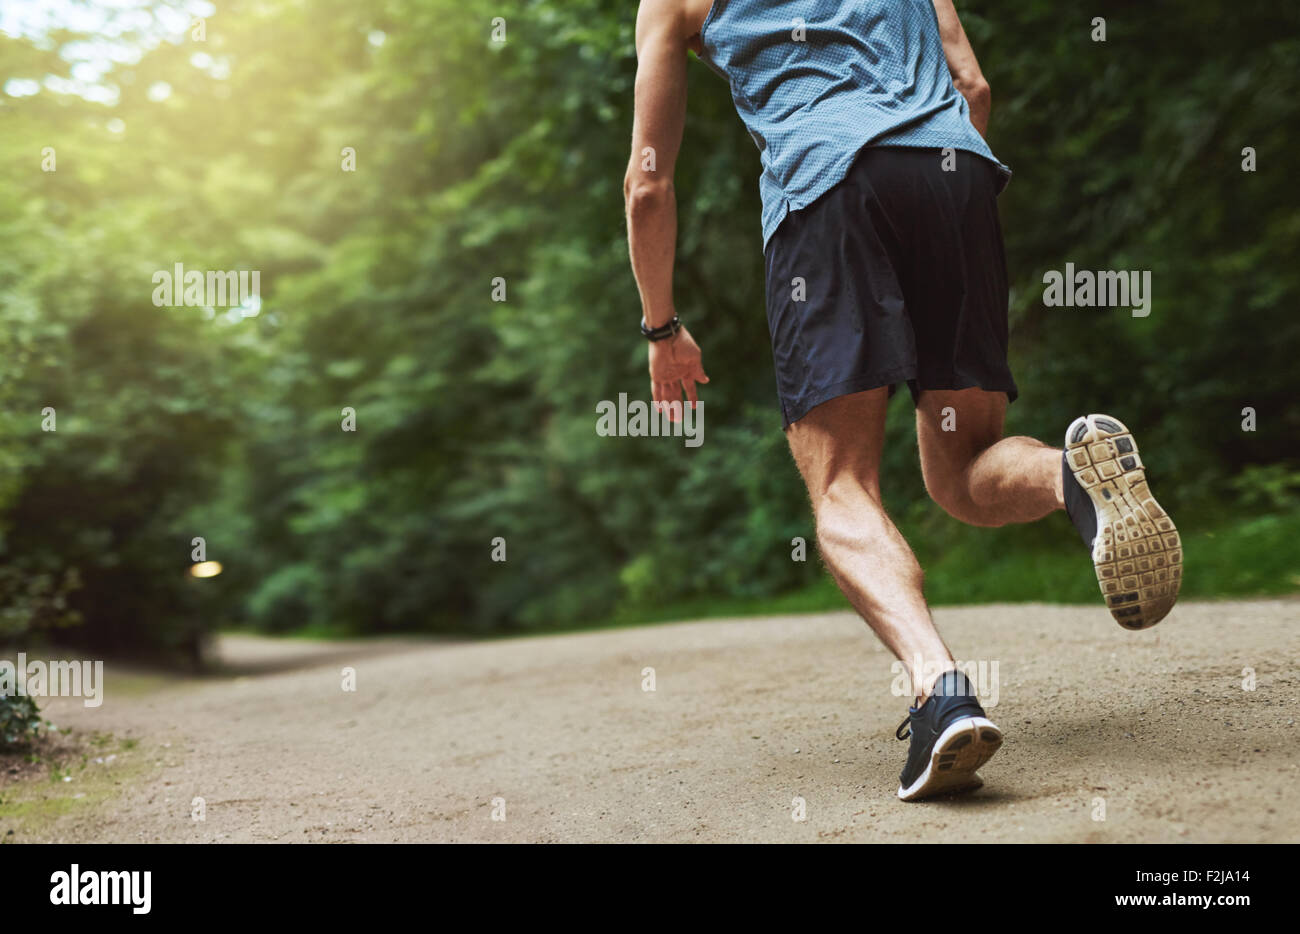 Headless Rear View Shot of an Athletic Young Man Running at the Park Early in the Morning. - Stock Image